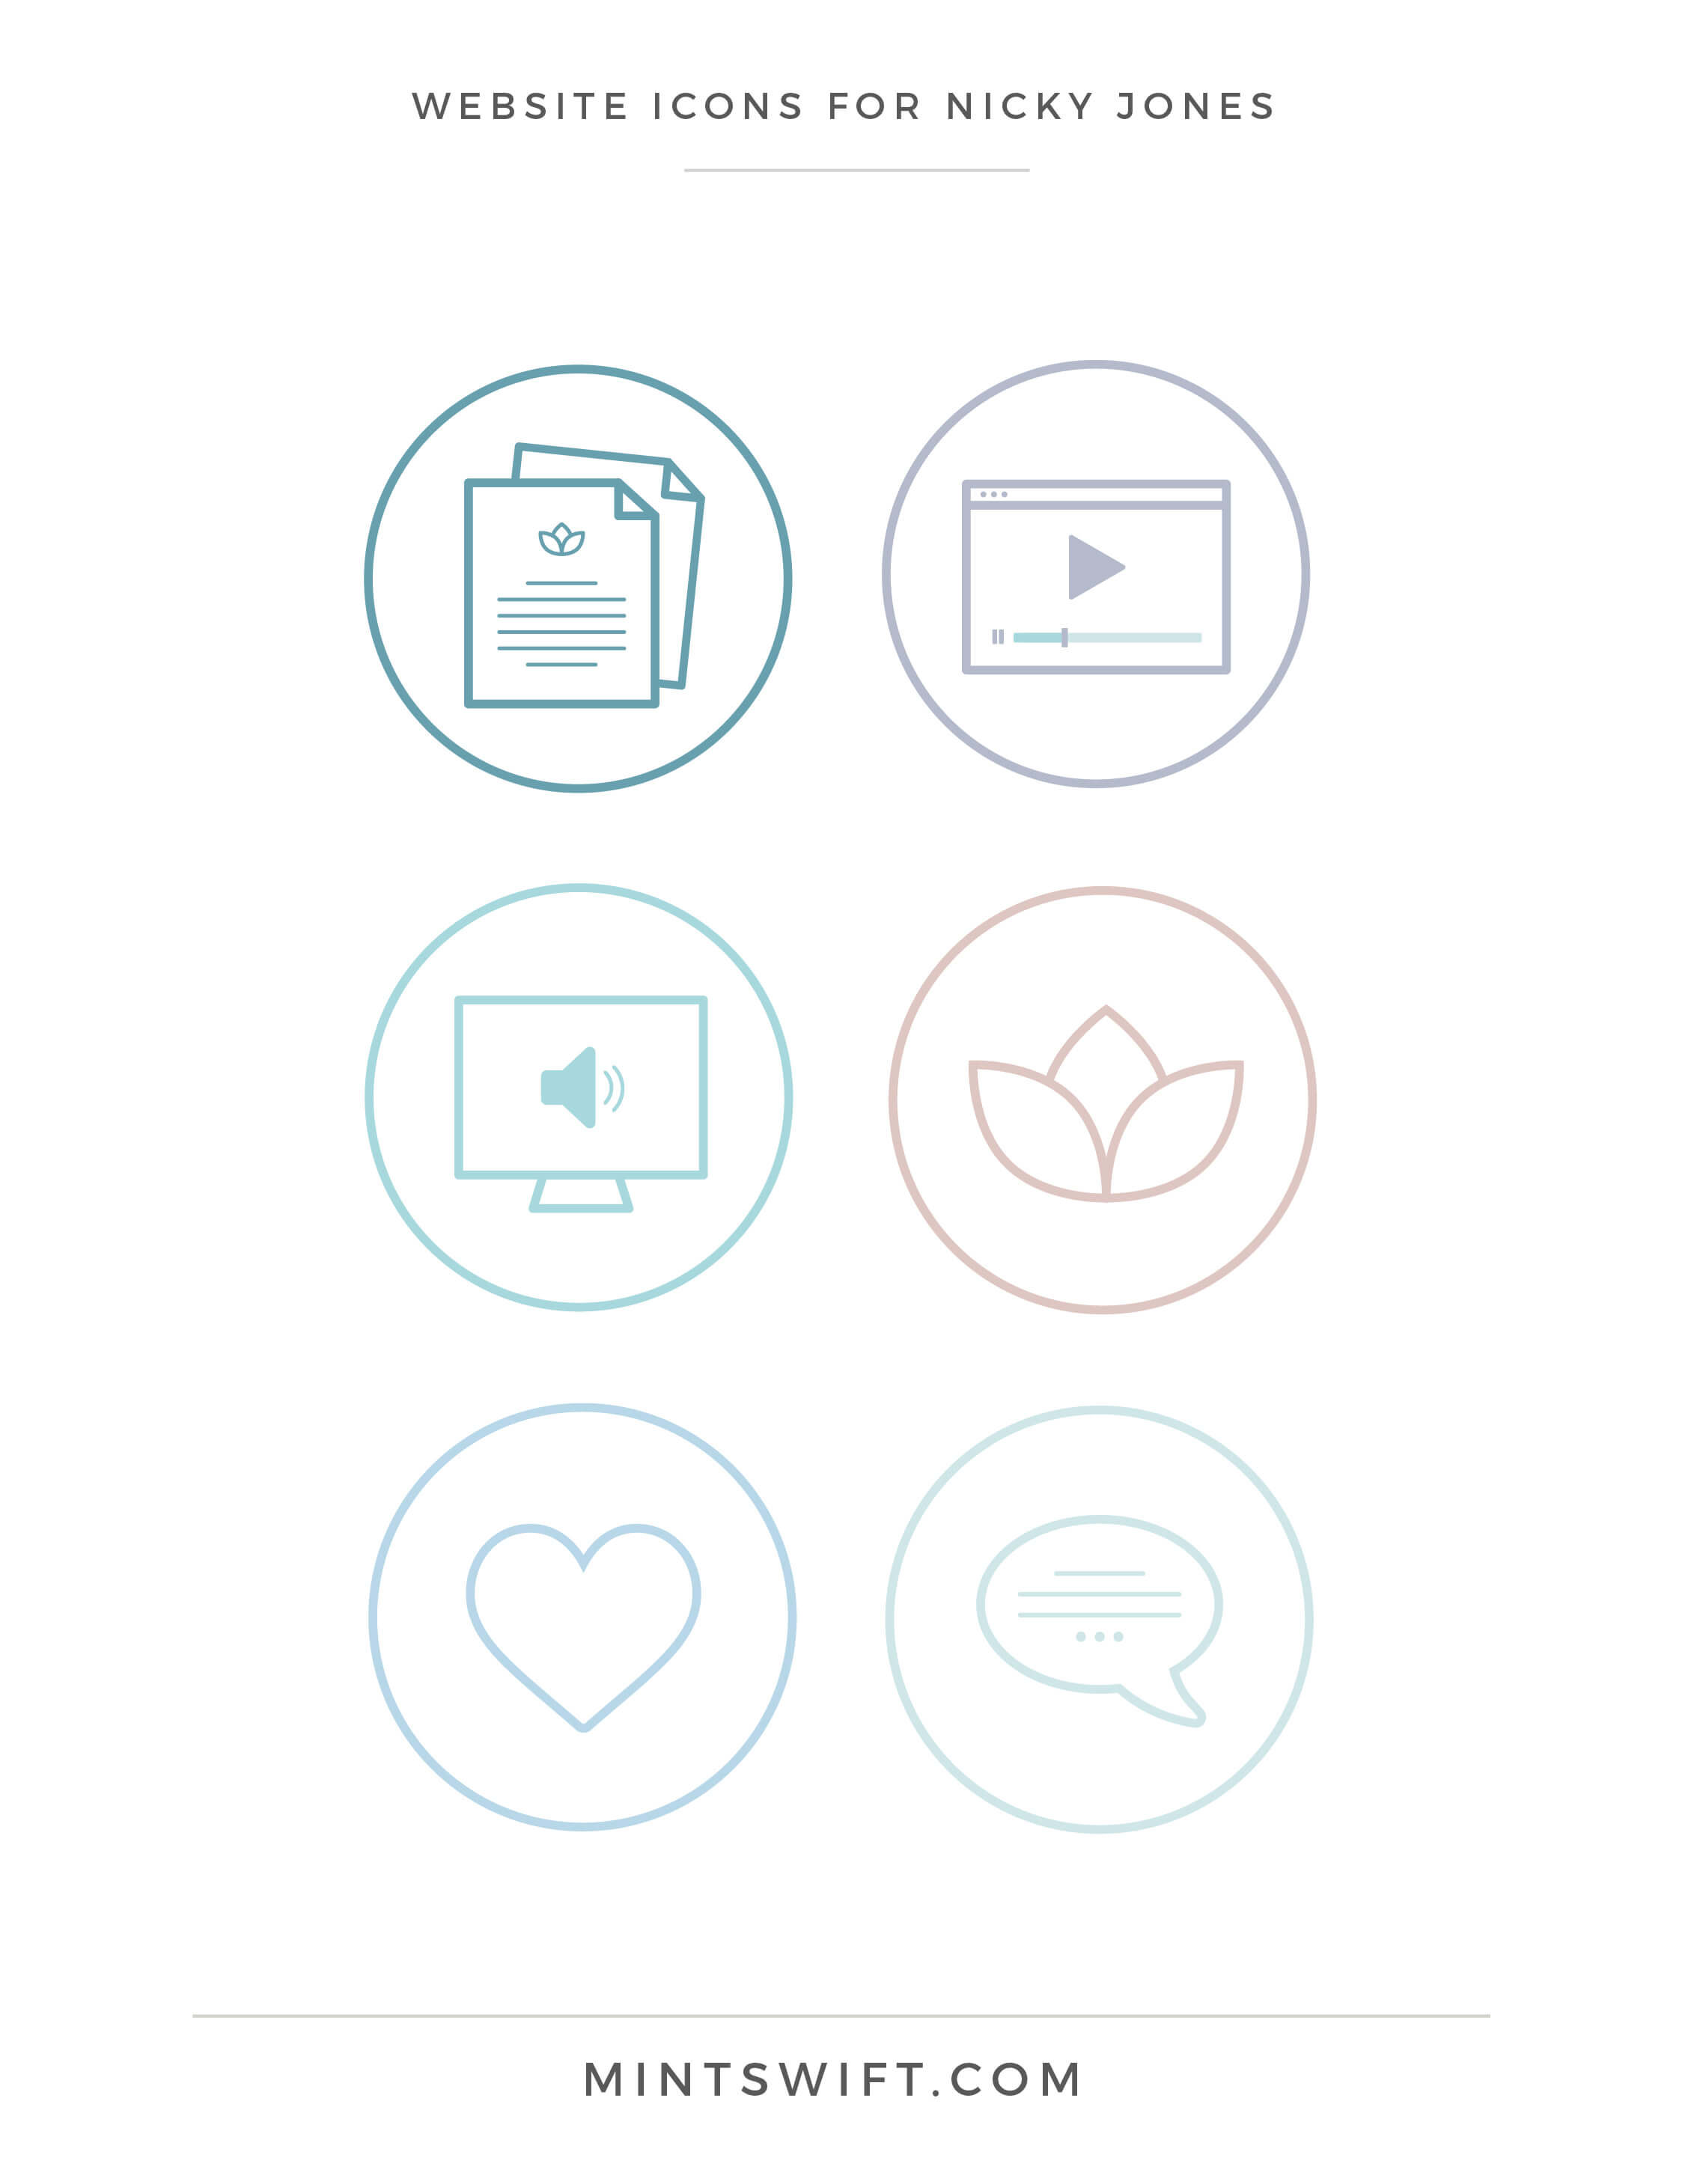 Nicky Jones - Website Icons - Brand Design Package - MintSwift